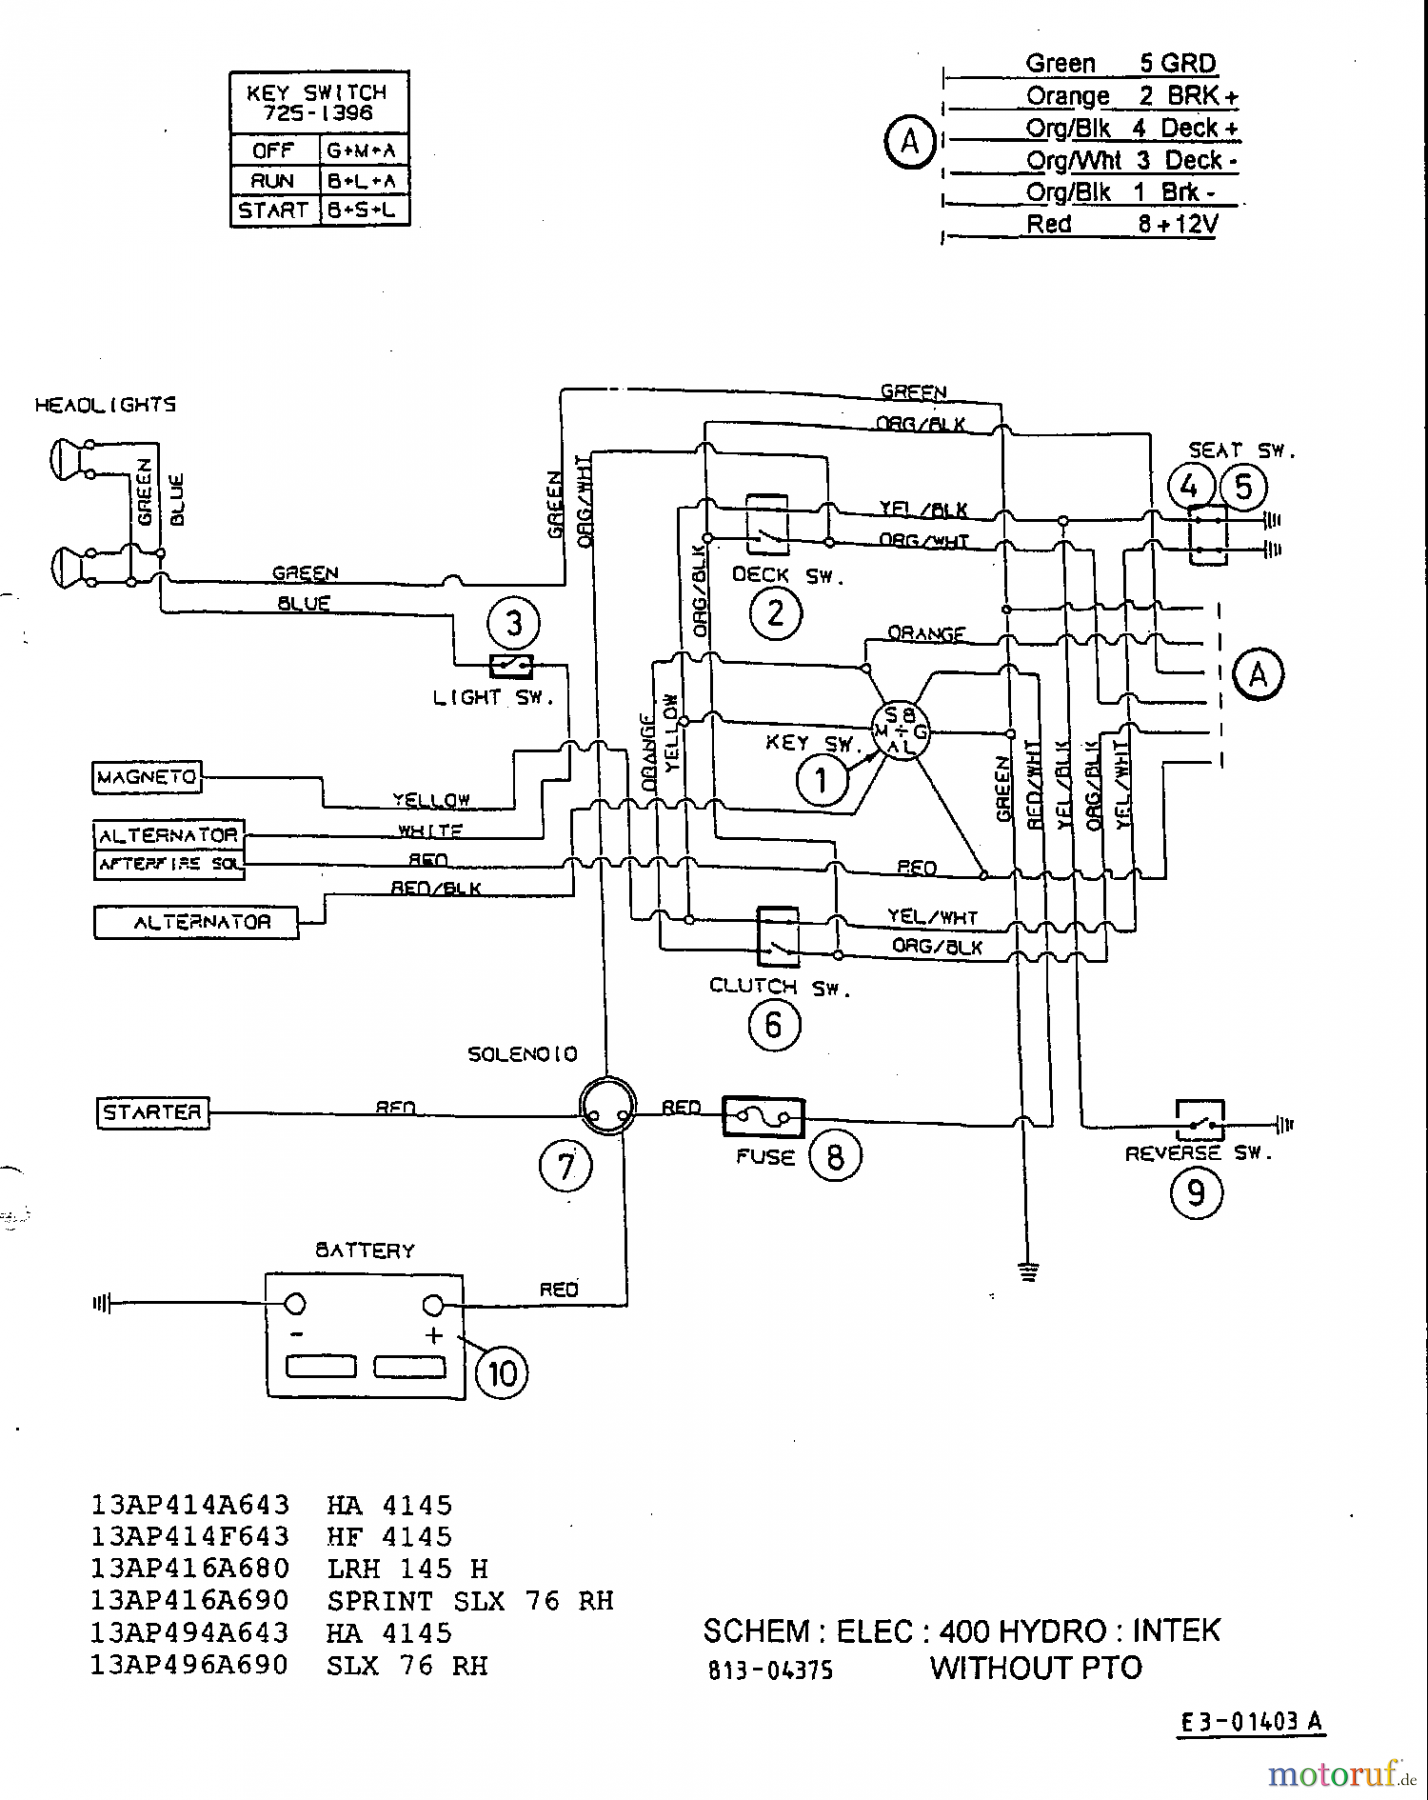 mtd mowers wiring diagram schematics wiring diagrams u2022 rh seniorlivinguniversity co MTD Ignition Switch Diagram MTD Riding Mower Wiring Diagram Charging